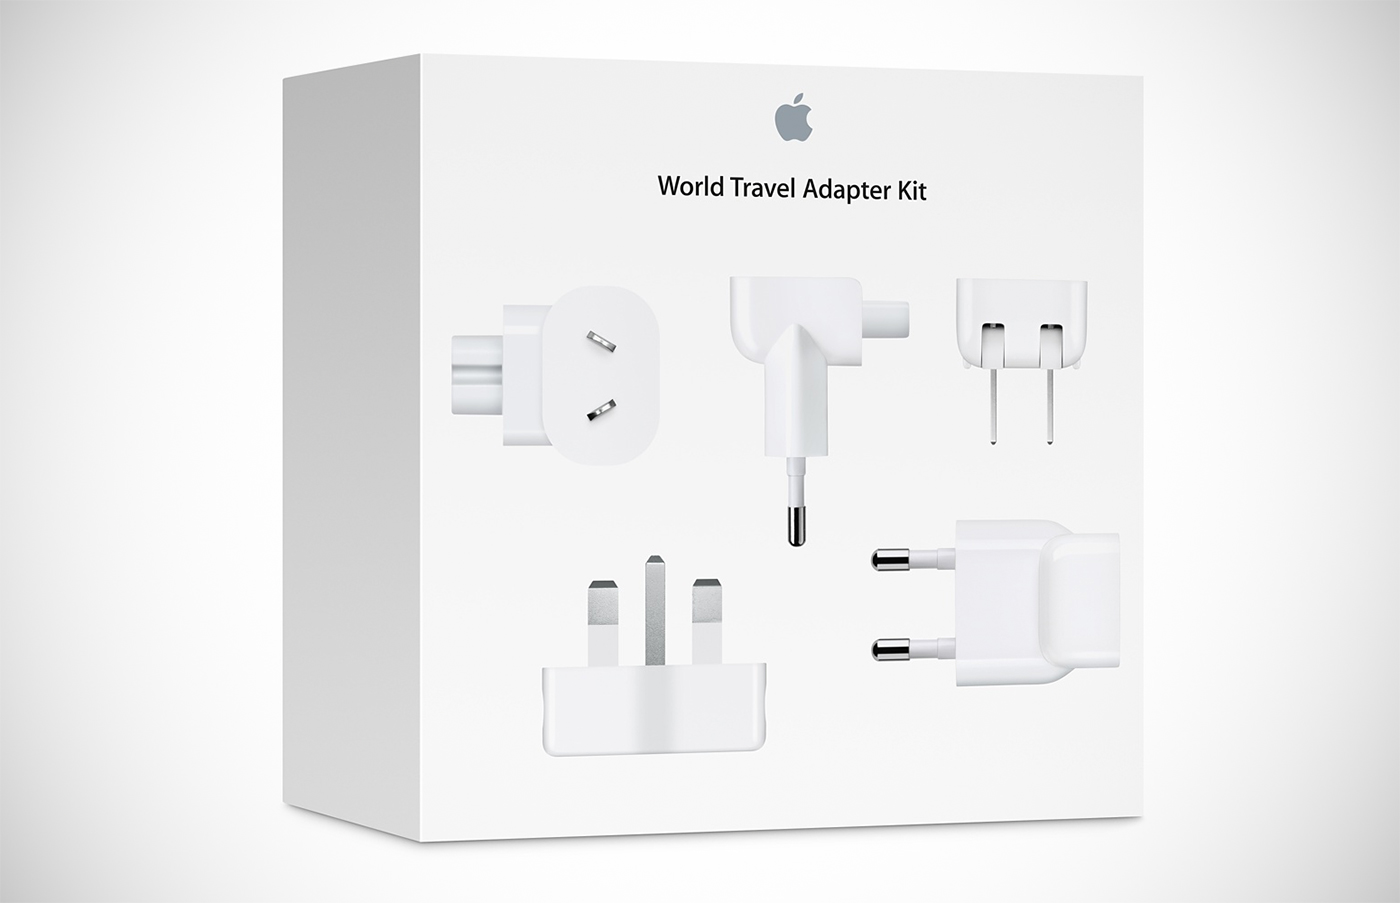 Apple sustituye adaptadores de enchufe para evitar descargas eléctricas